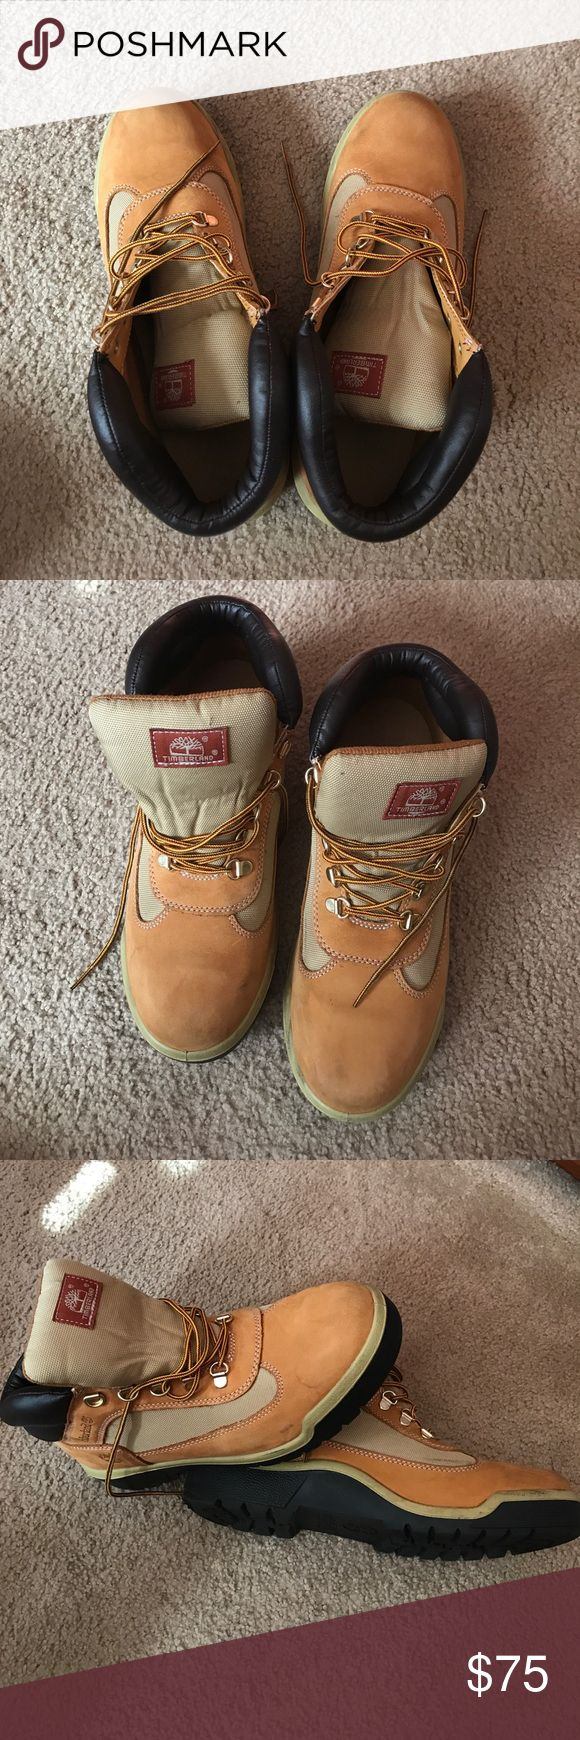 Timberland Timberland wheat hiker field boots style #6532a  Just in time for the cold weather ❄️☃️ Timberland Shoes Boots